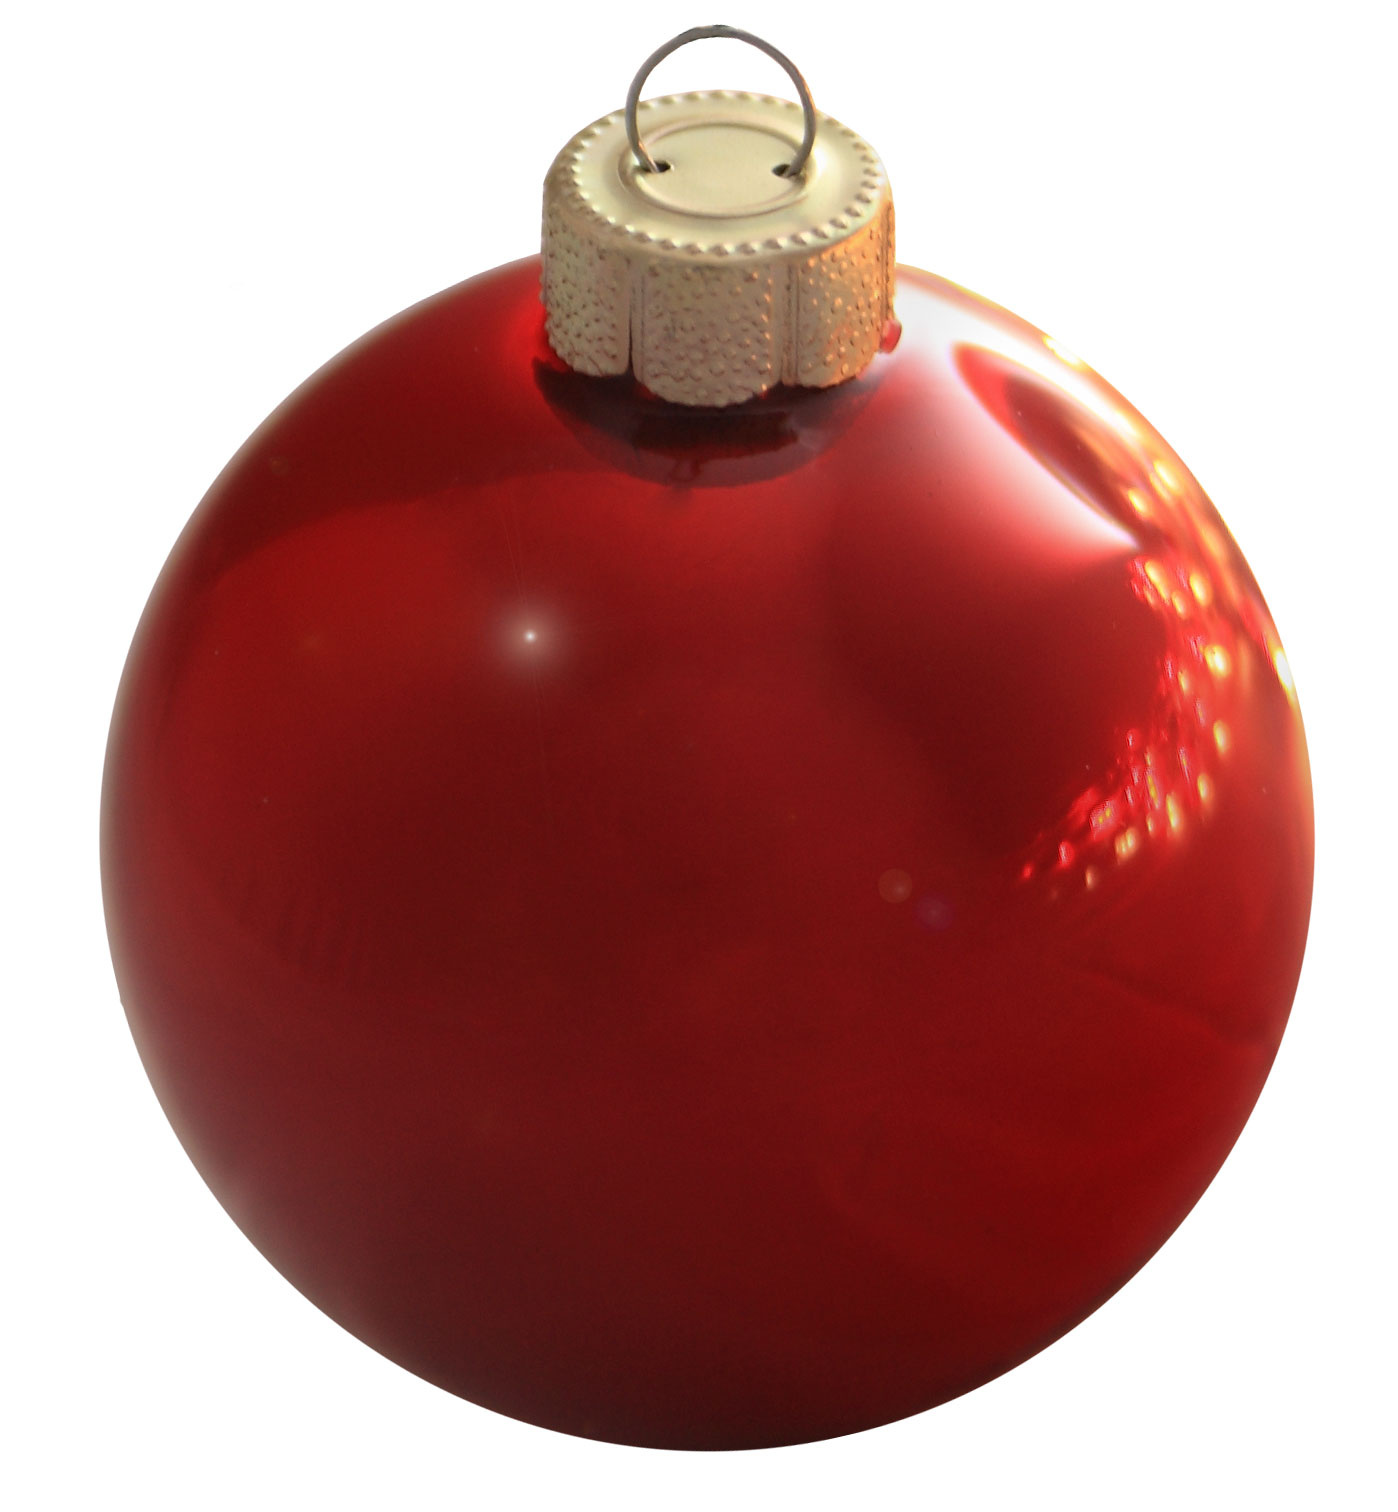 Best Photos of Christmas Ball Ornaments - Red Christmas Balls ...